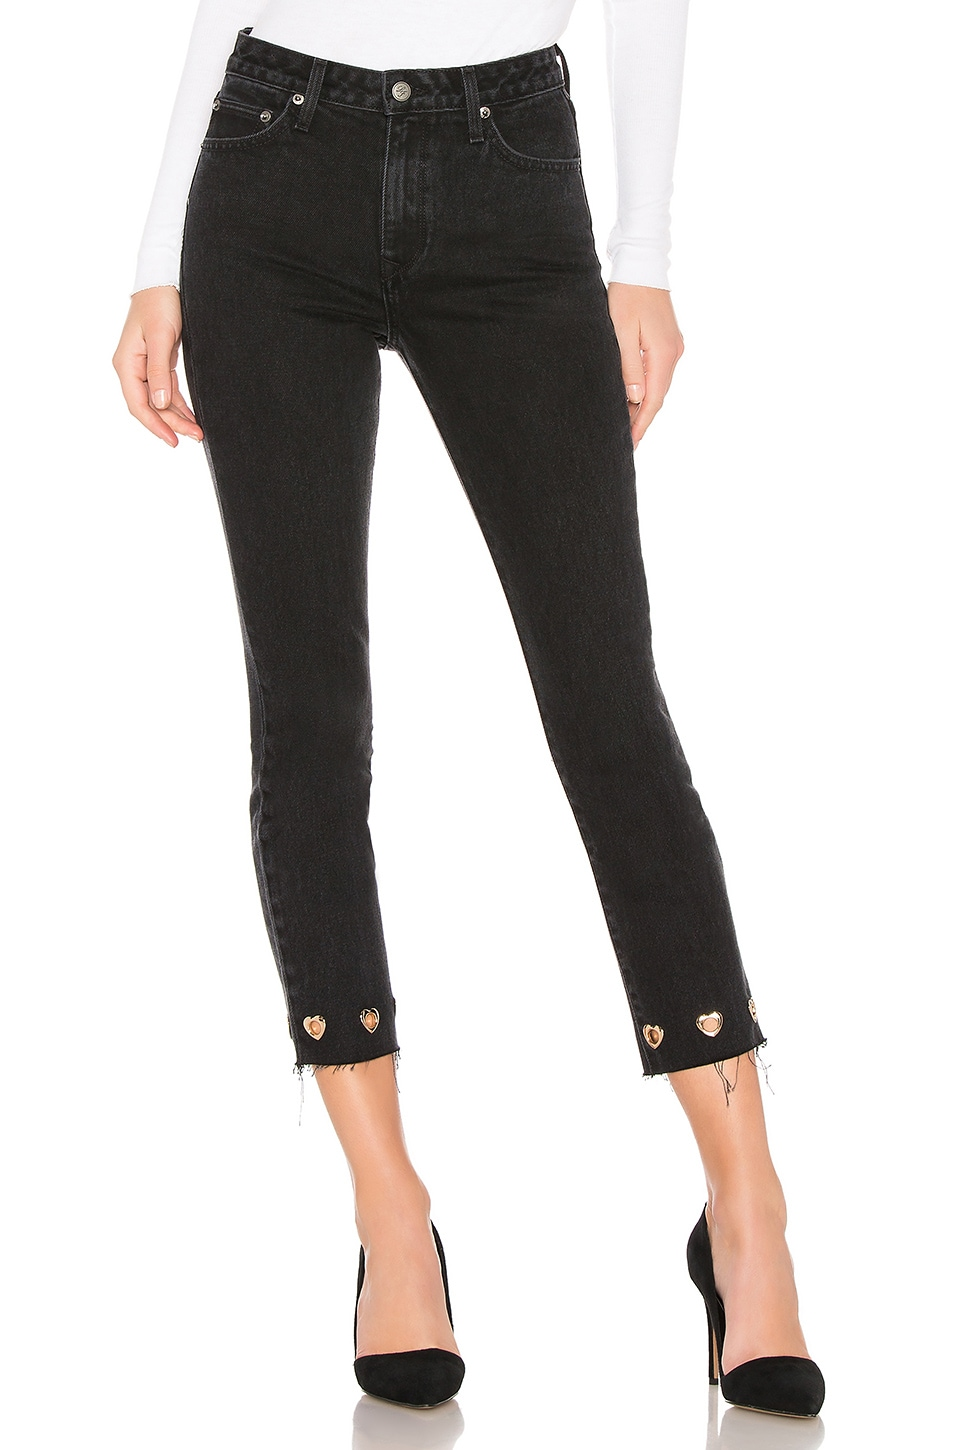 Lovers + Friends Logan High-Rise Tapered Jean in Palisade